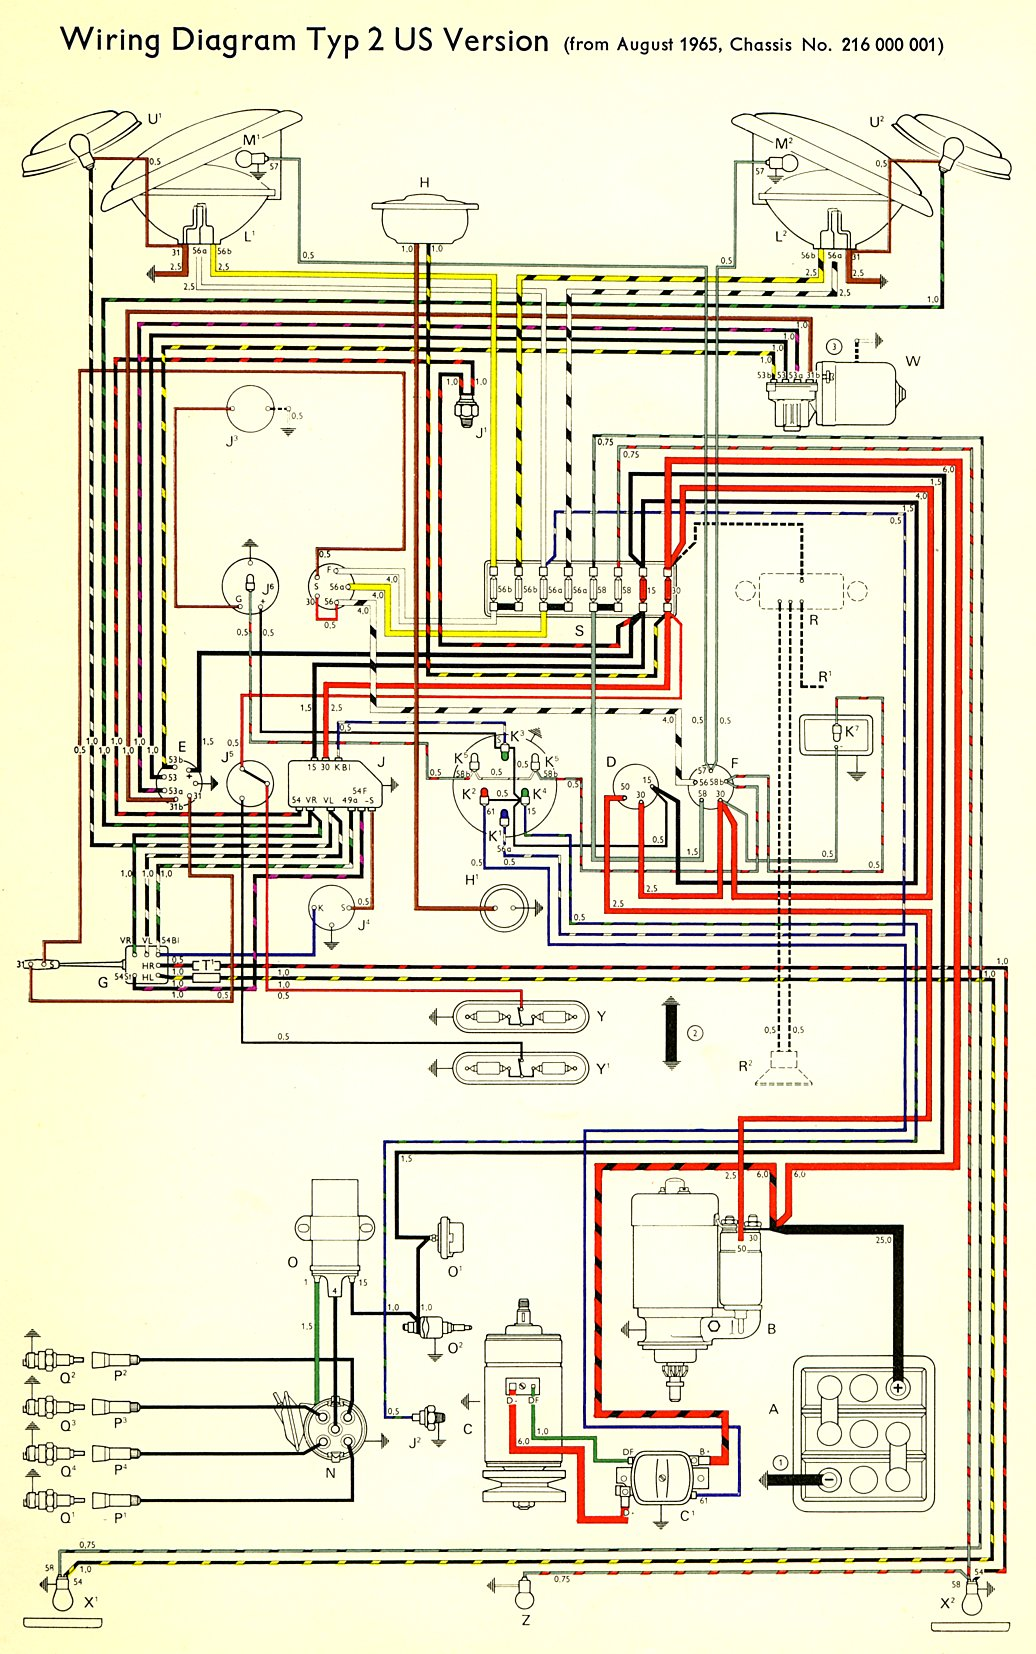 bus_66_USA 1966 bus wiring diagram (usa) thegoldenbug com 1957 vw beetle wiring diagram at bayanpartner.co